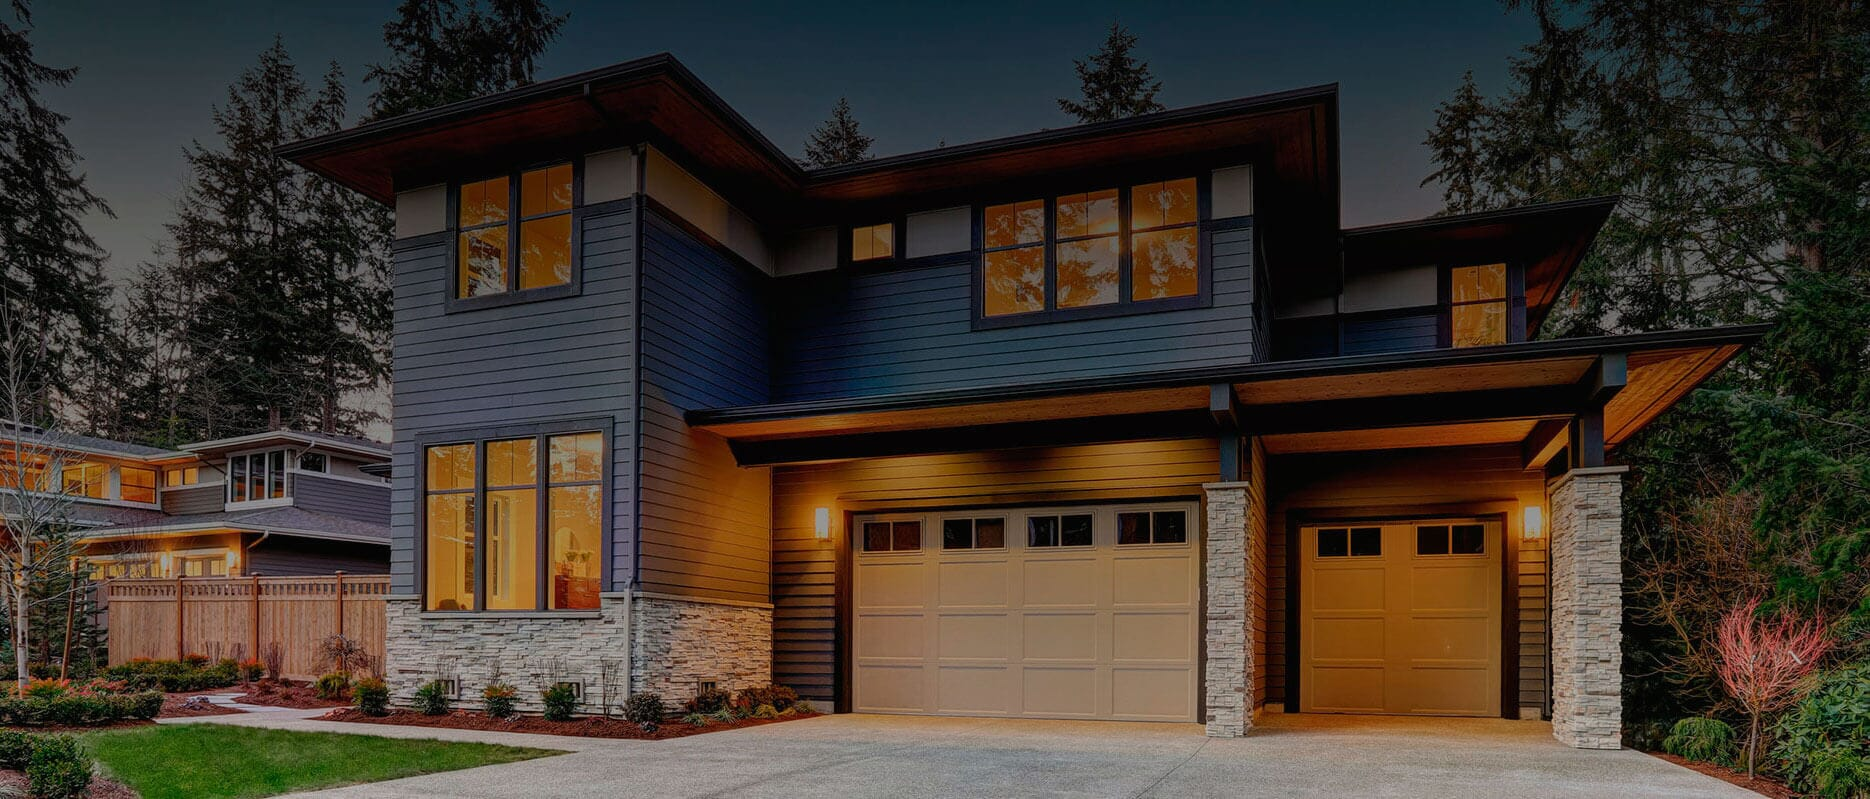 Westcost Contemporary Homes for Sale Nanaimo